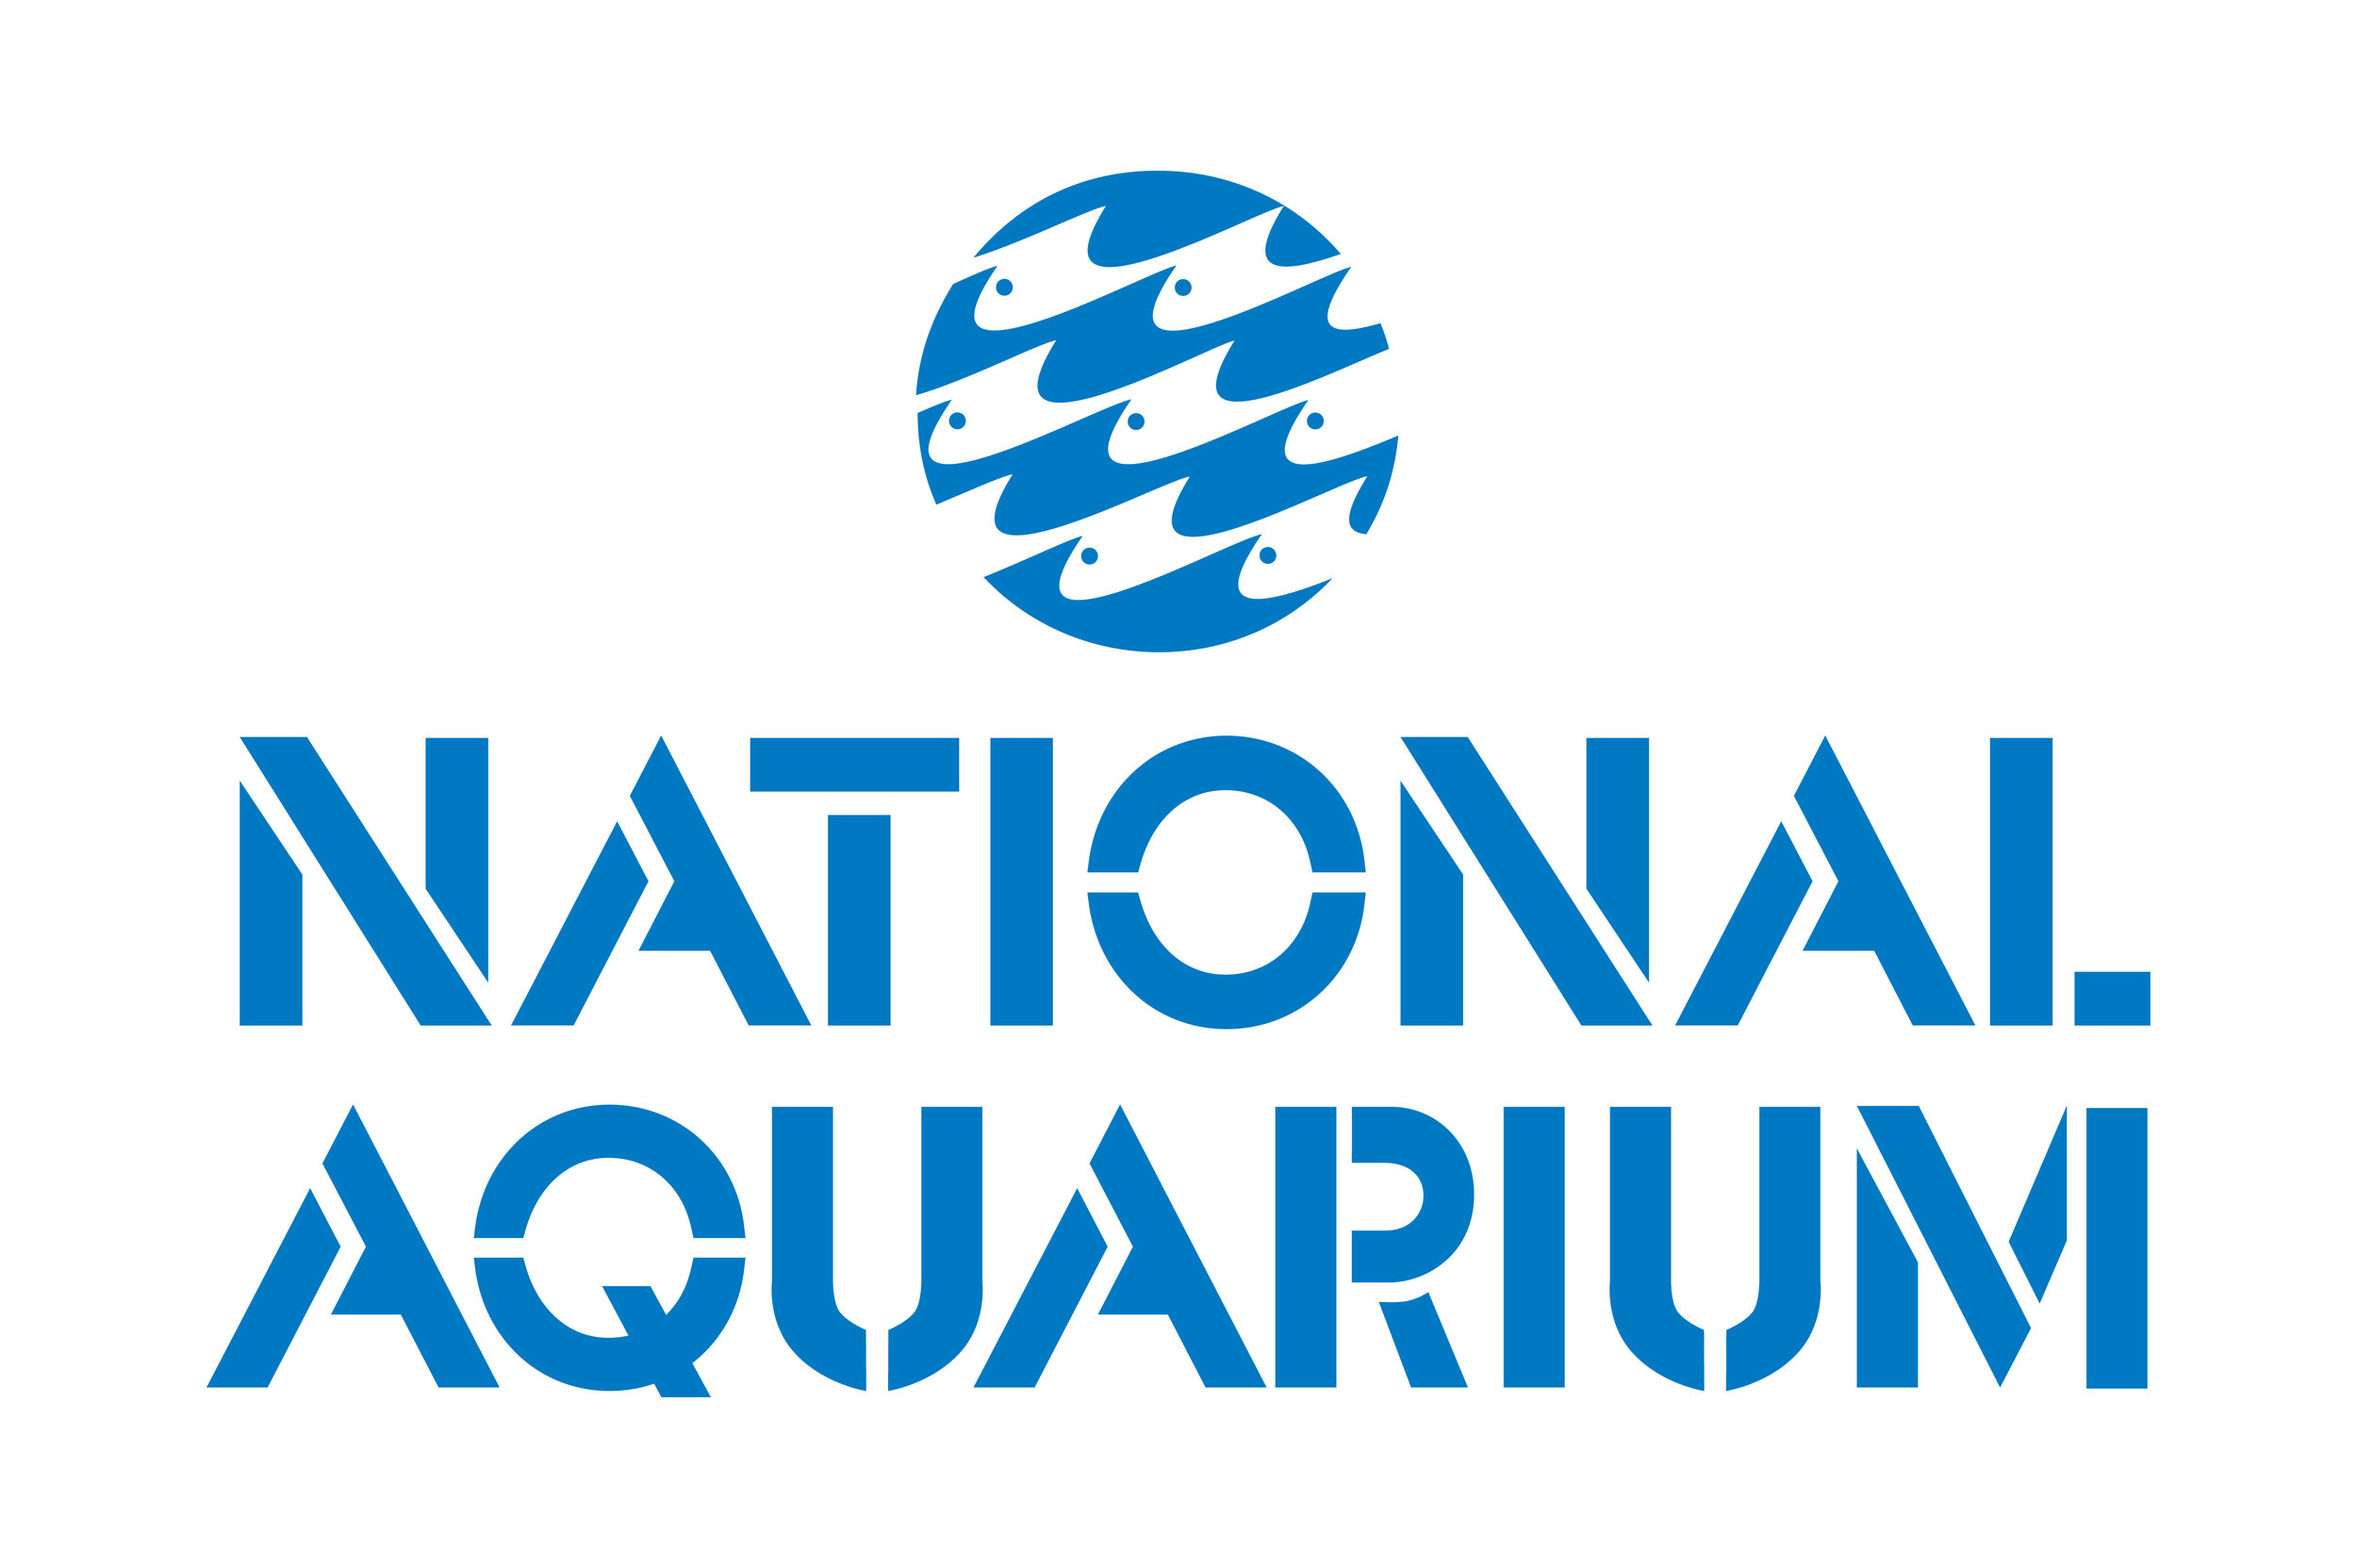 National_Aquarium_in_Baltimore.jpg